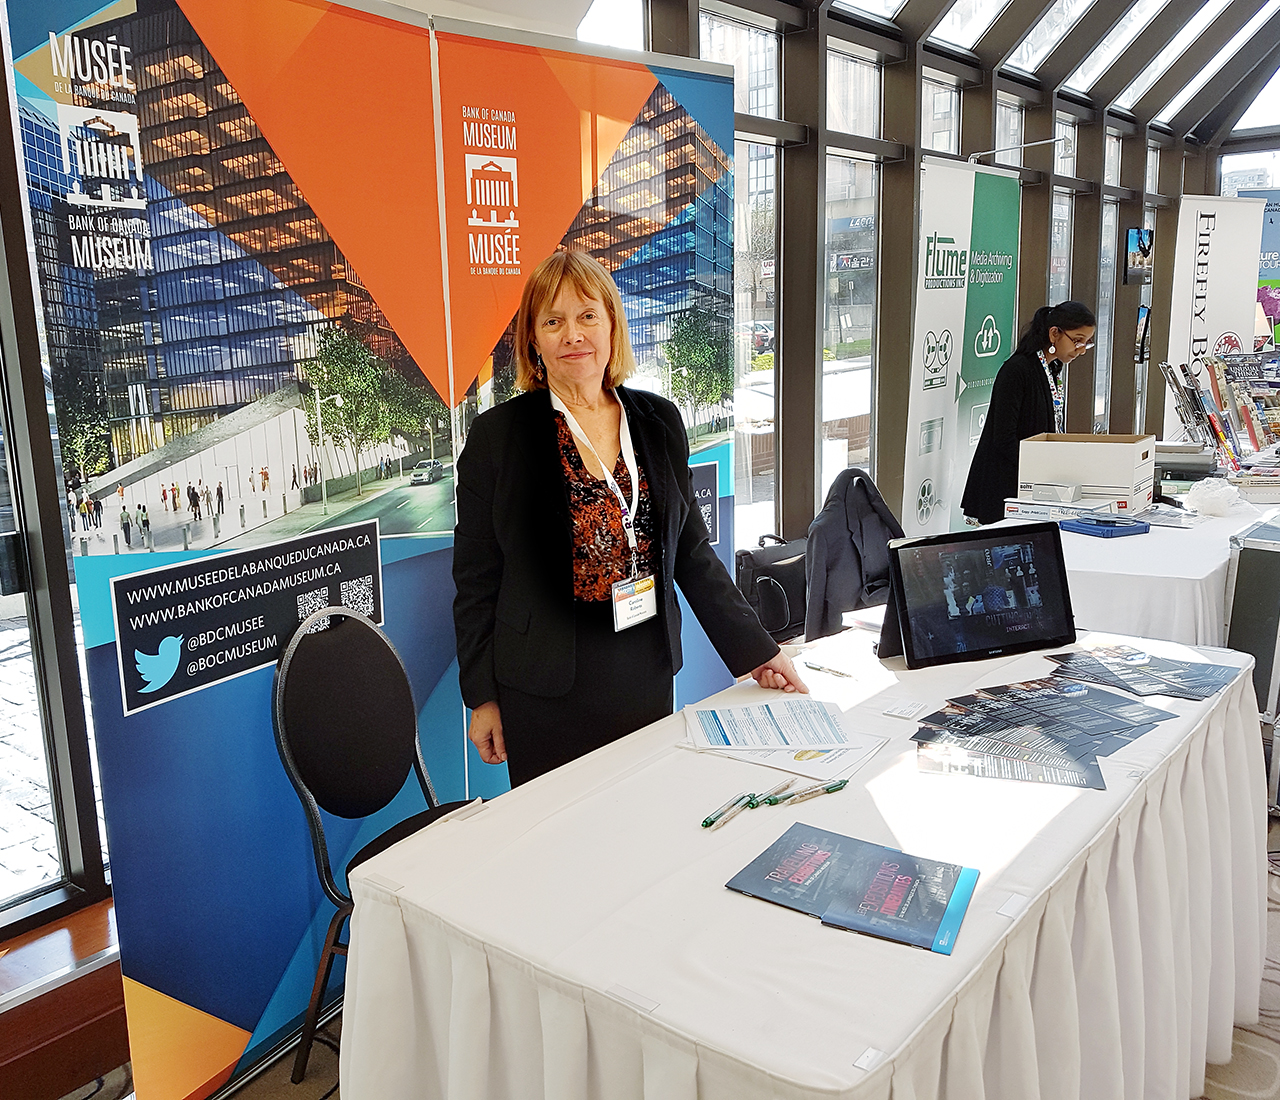 woman standing at a conference kiosk